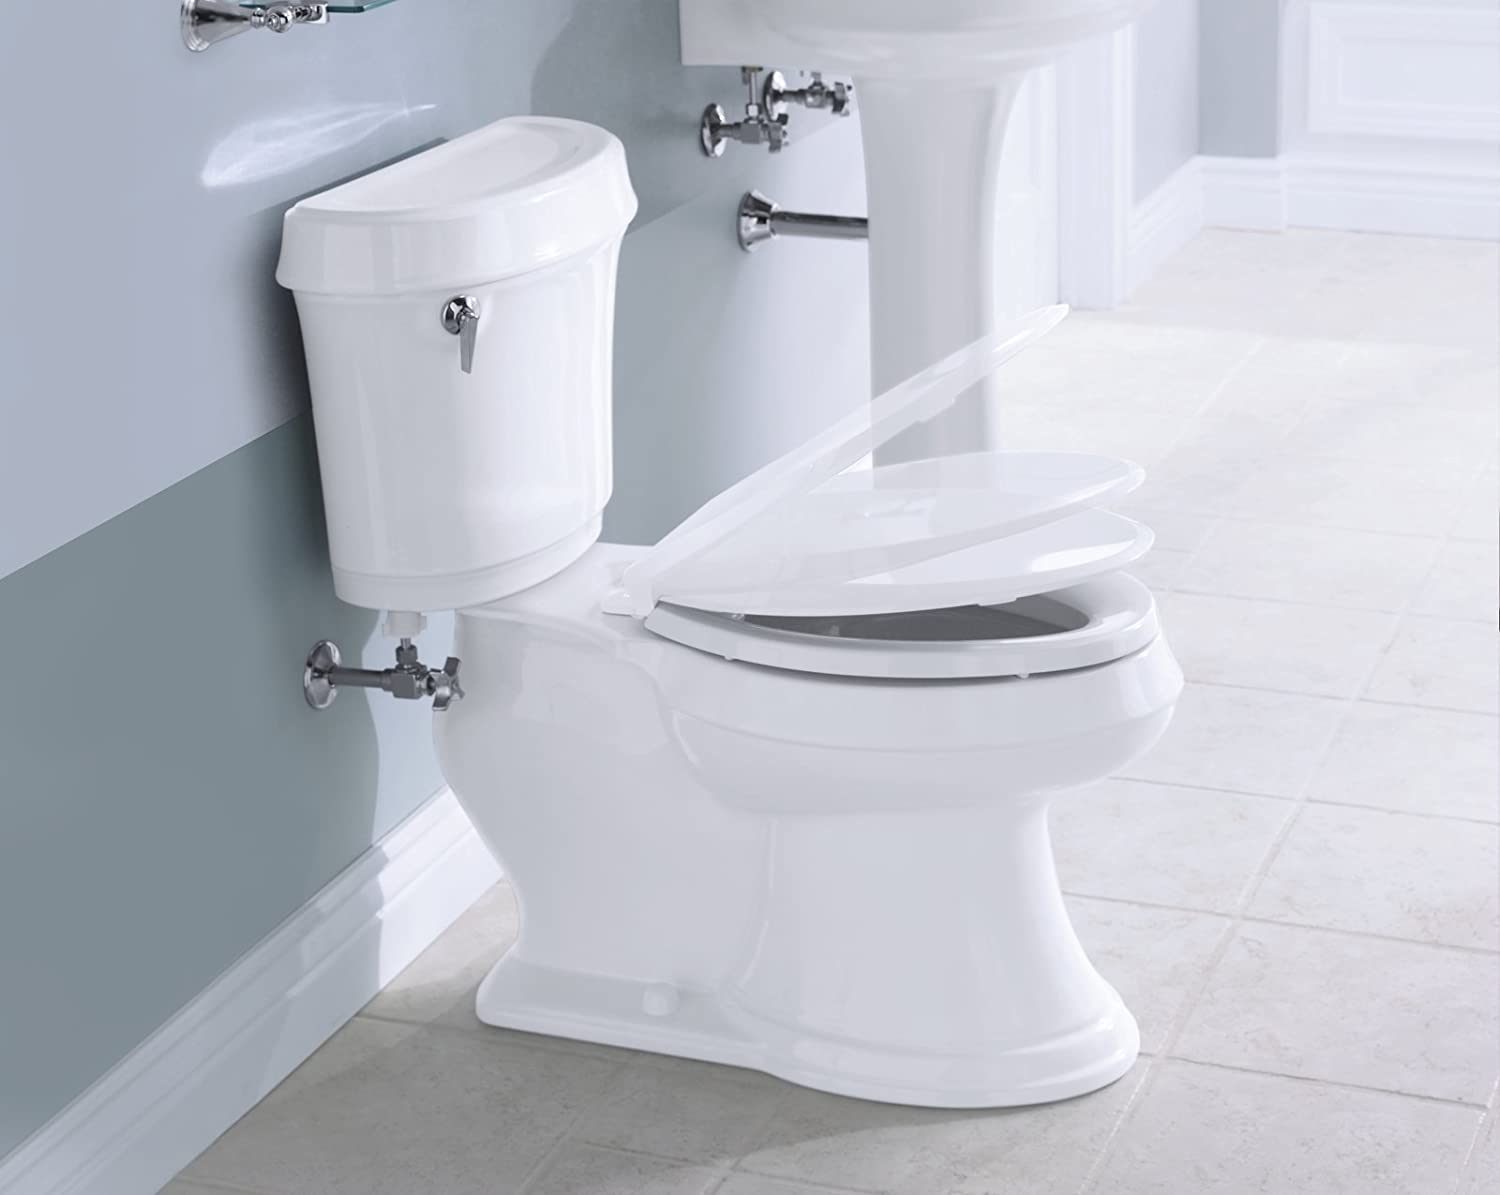 Top 10 Best Soft Close Toilet Seat Reviews 2016 2017 On